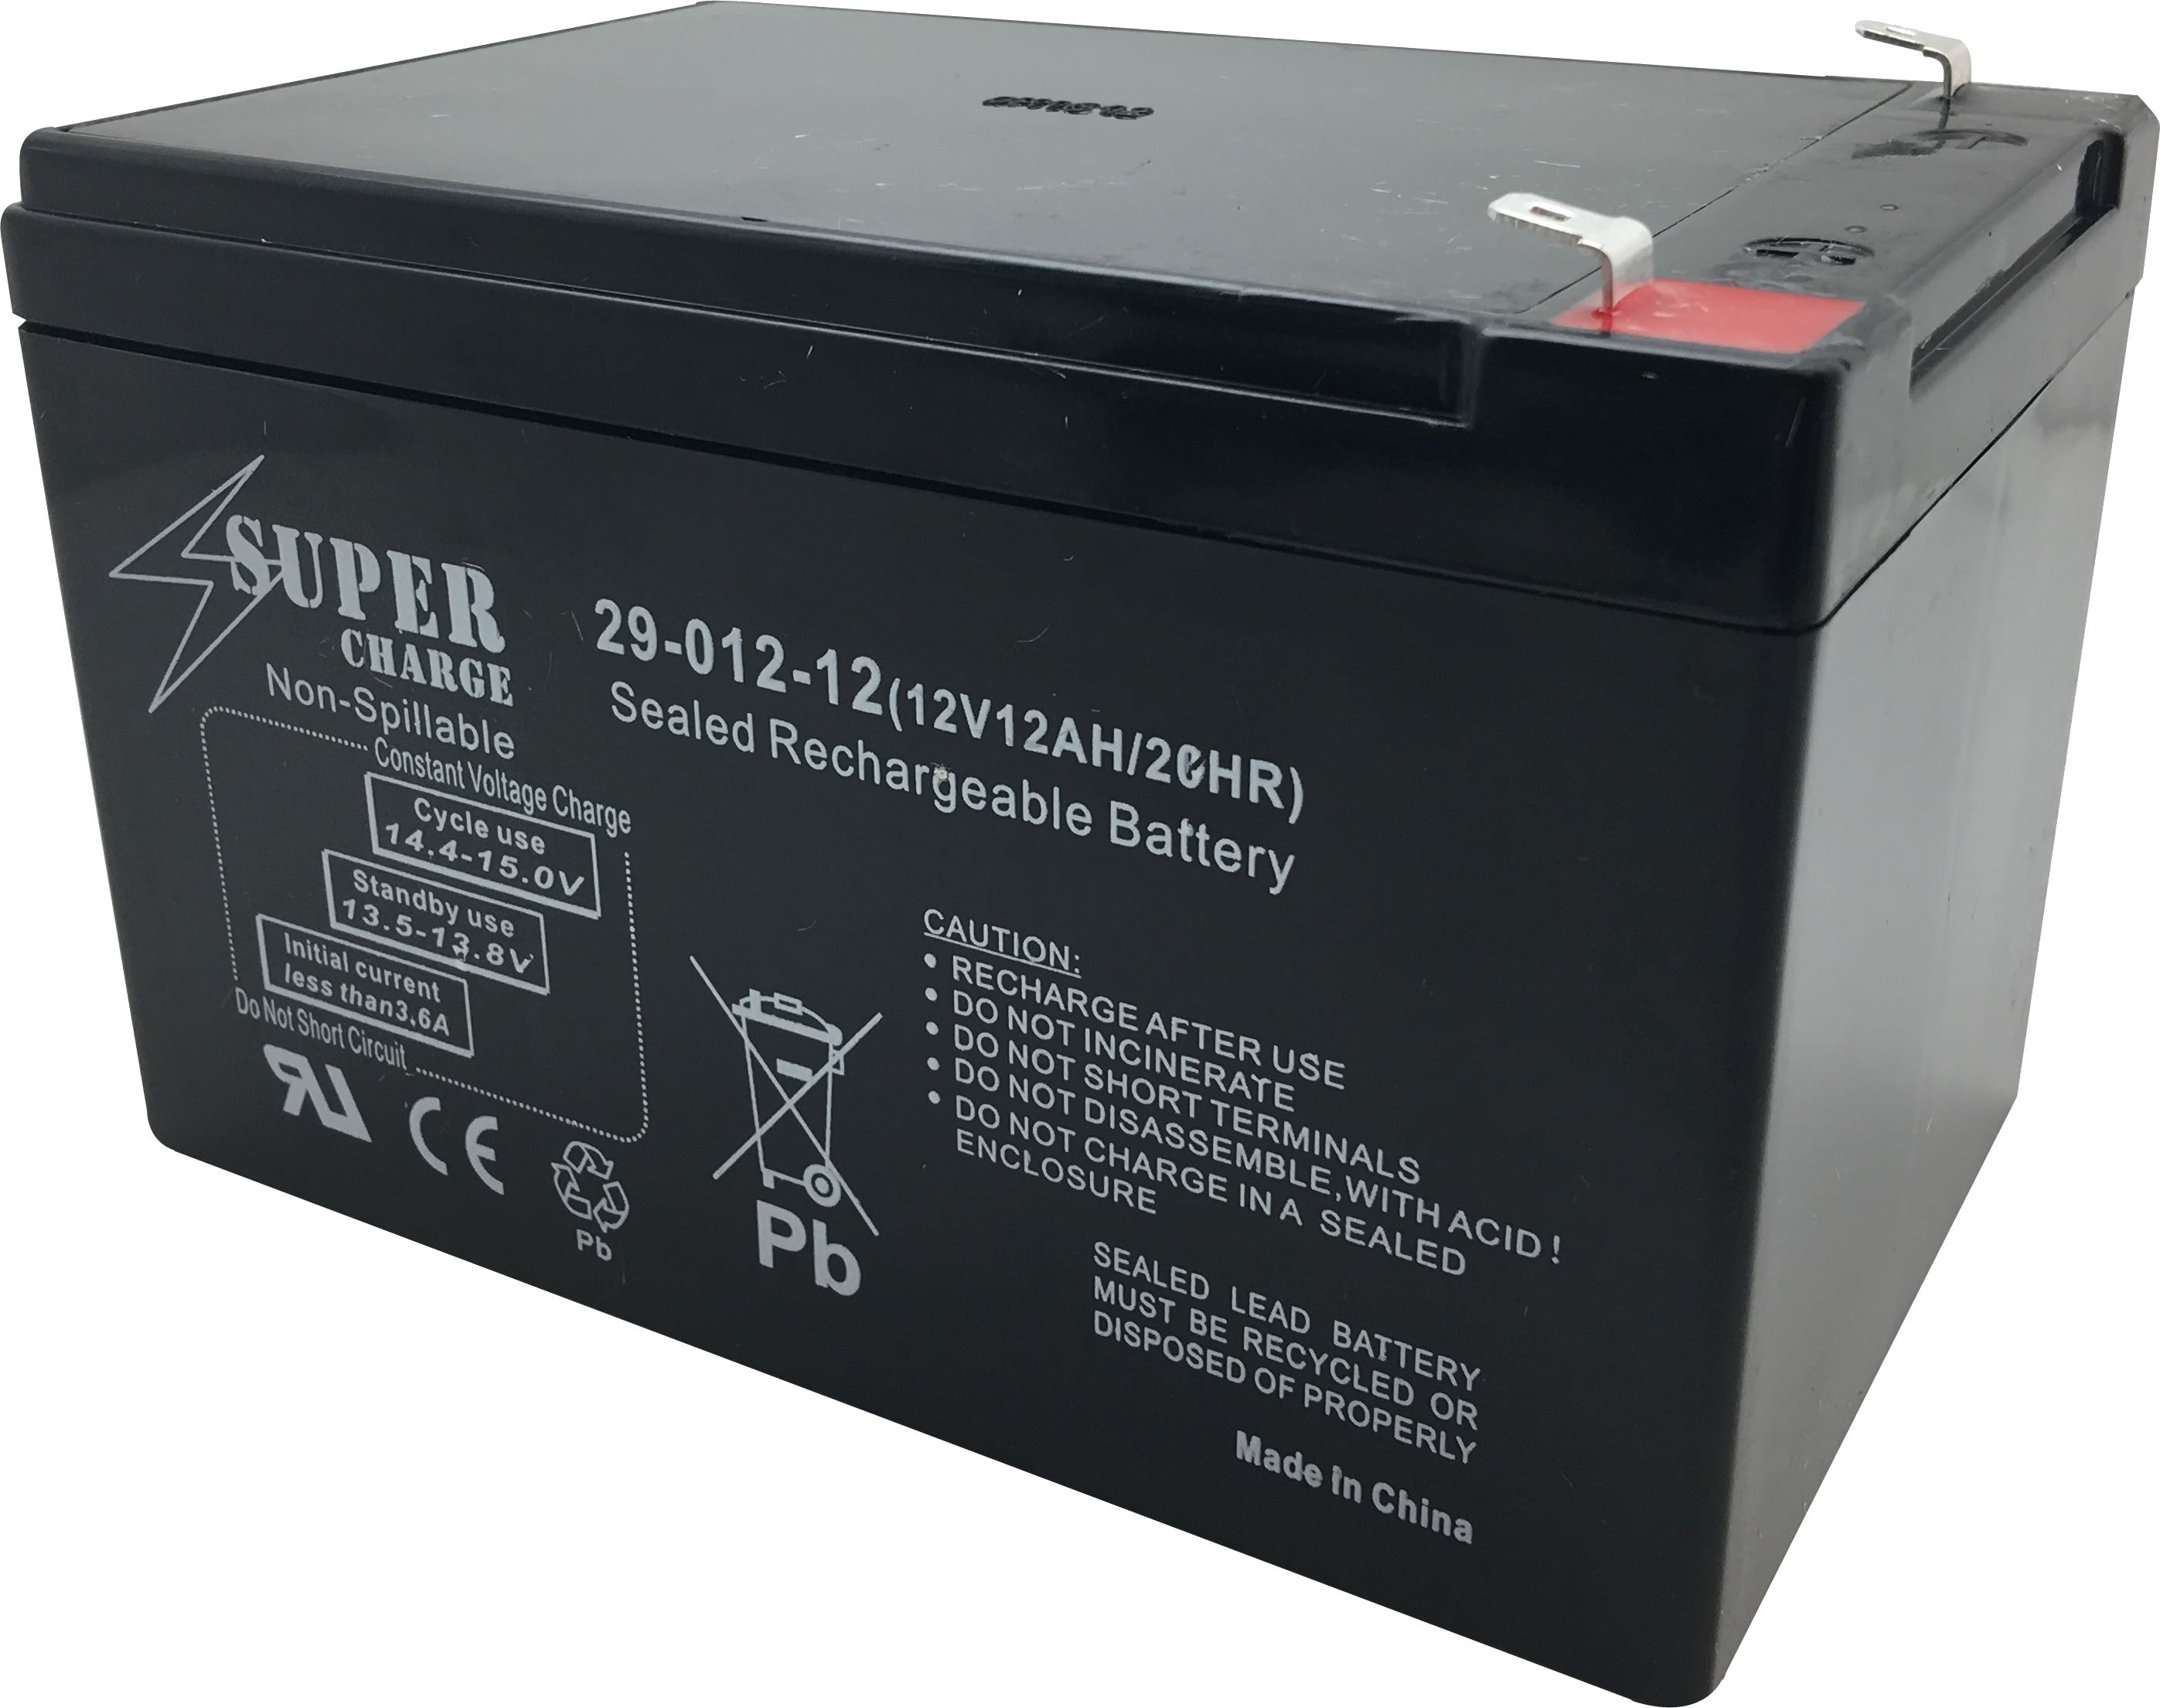 29-012-12 Rechargeable Battery 12V 12AH 20HR